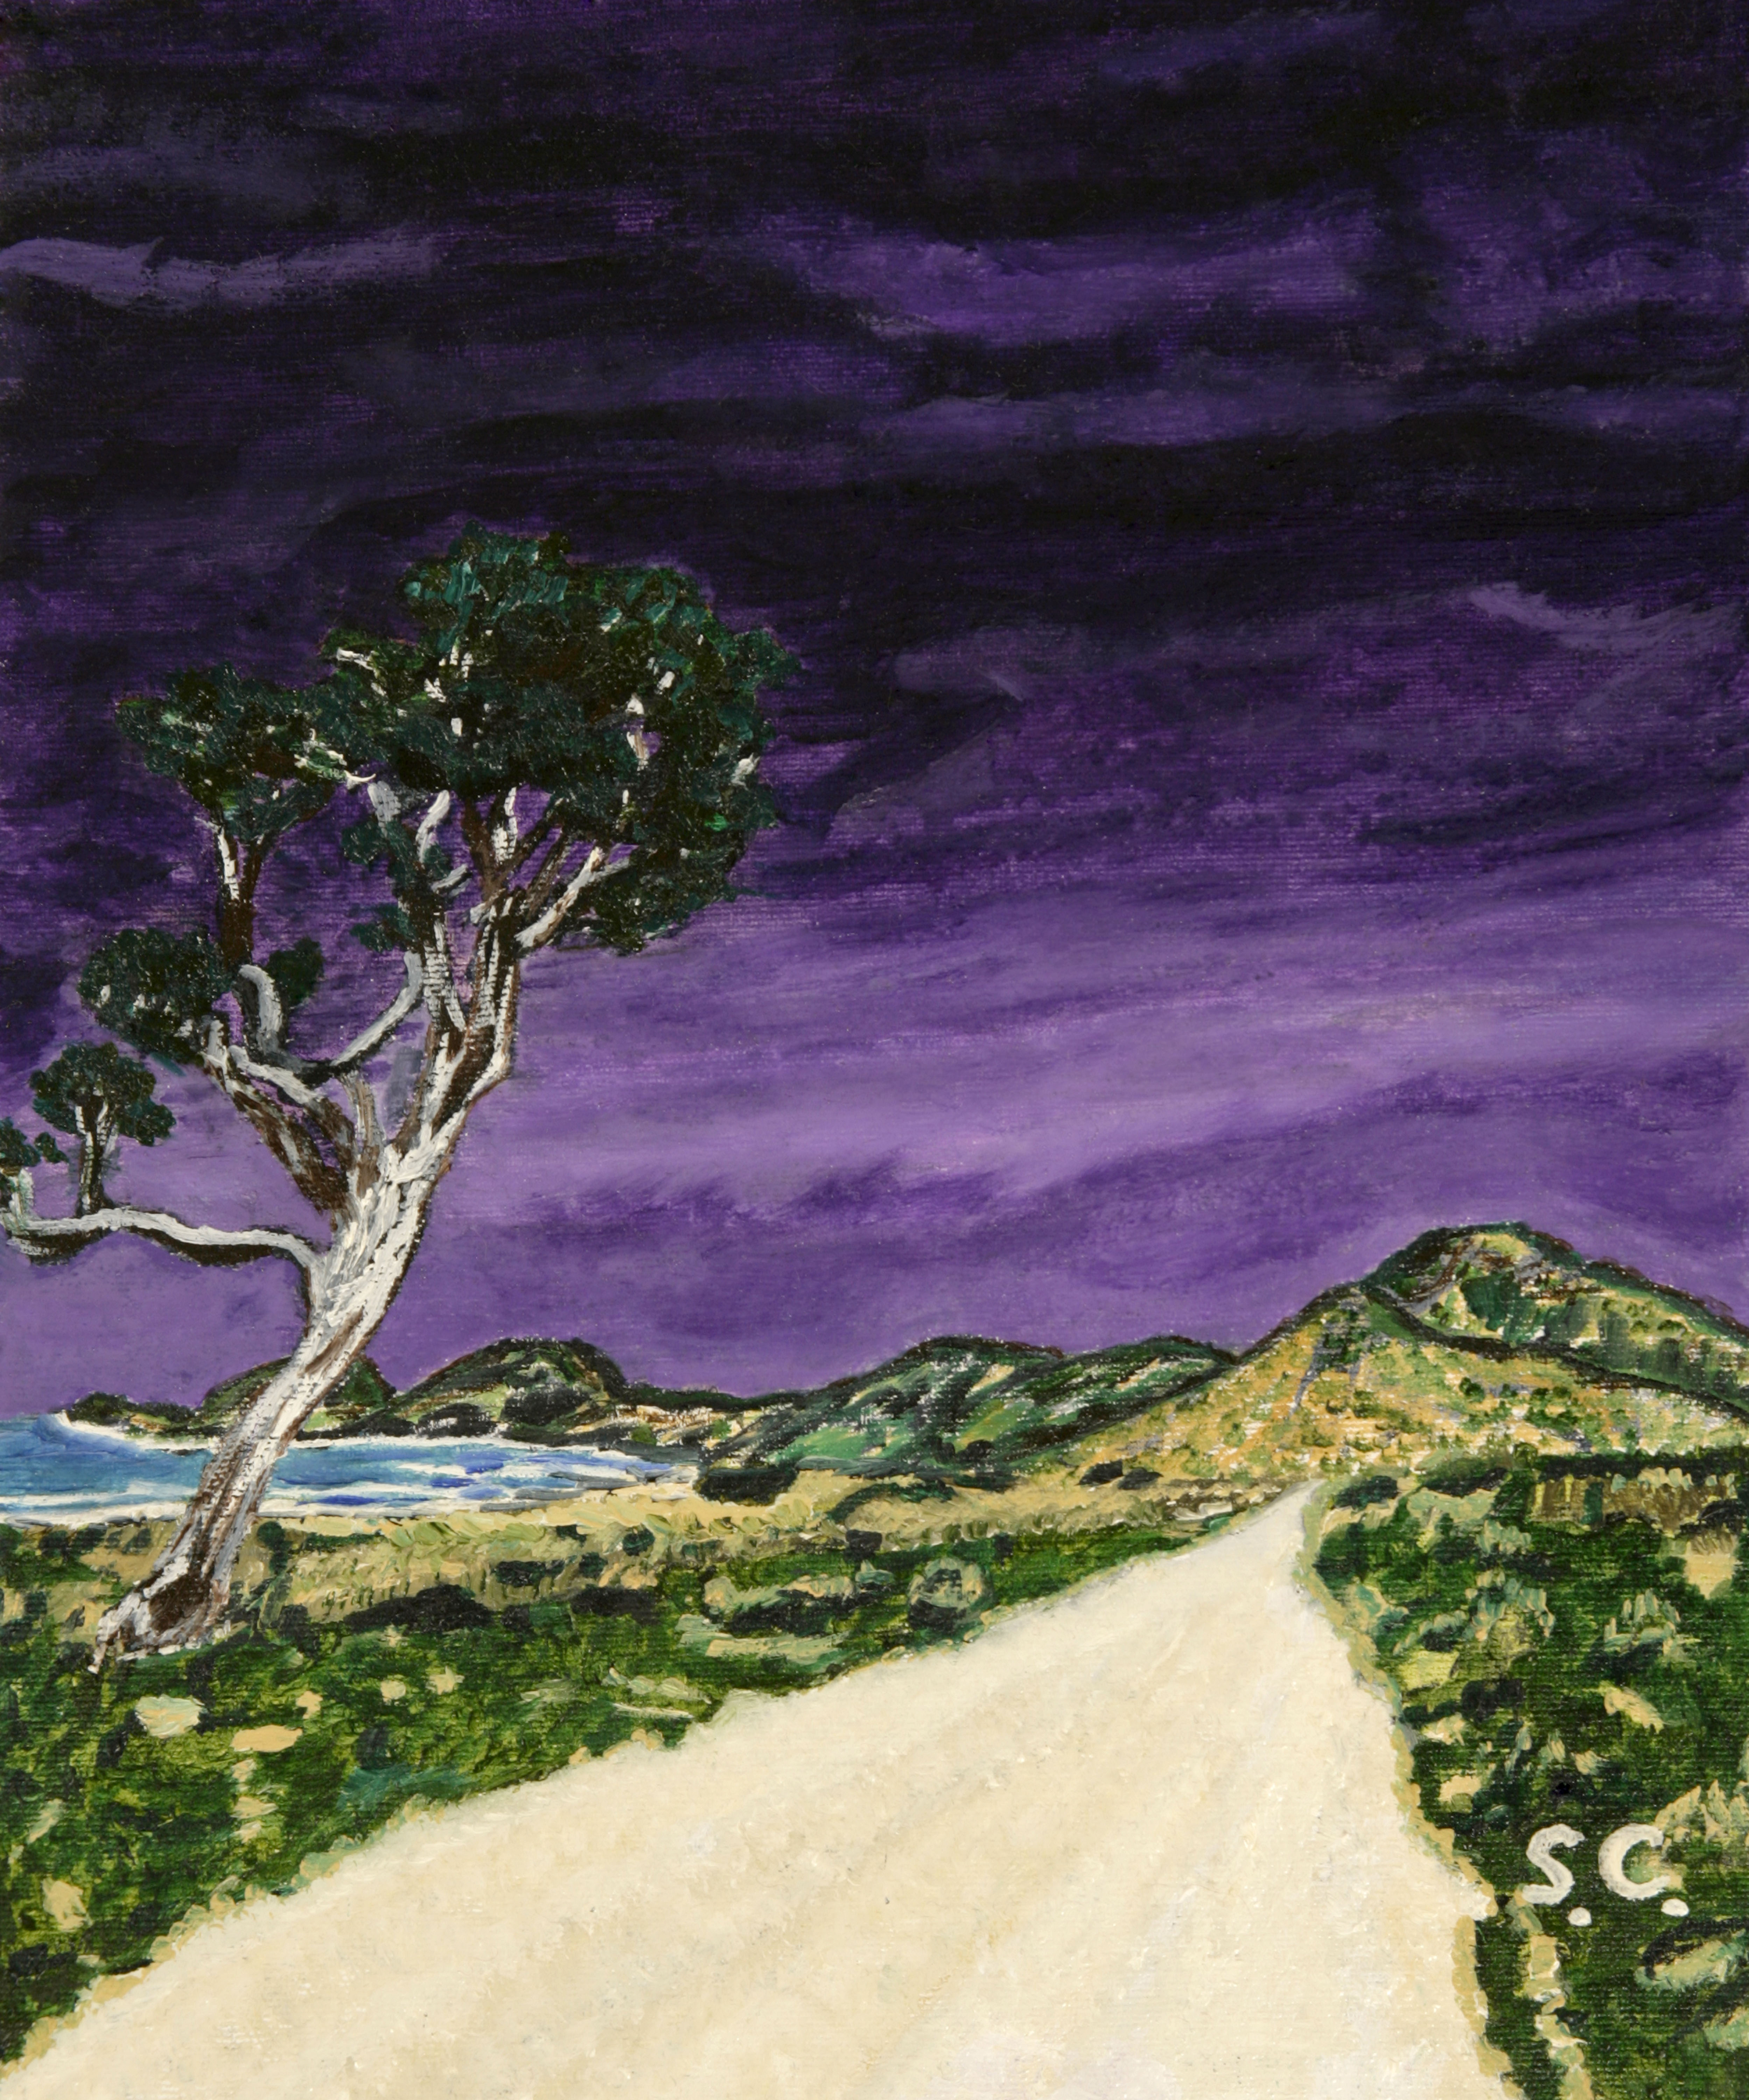 012 The Tree, Purple Sky, White Road